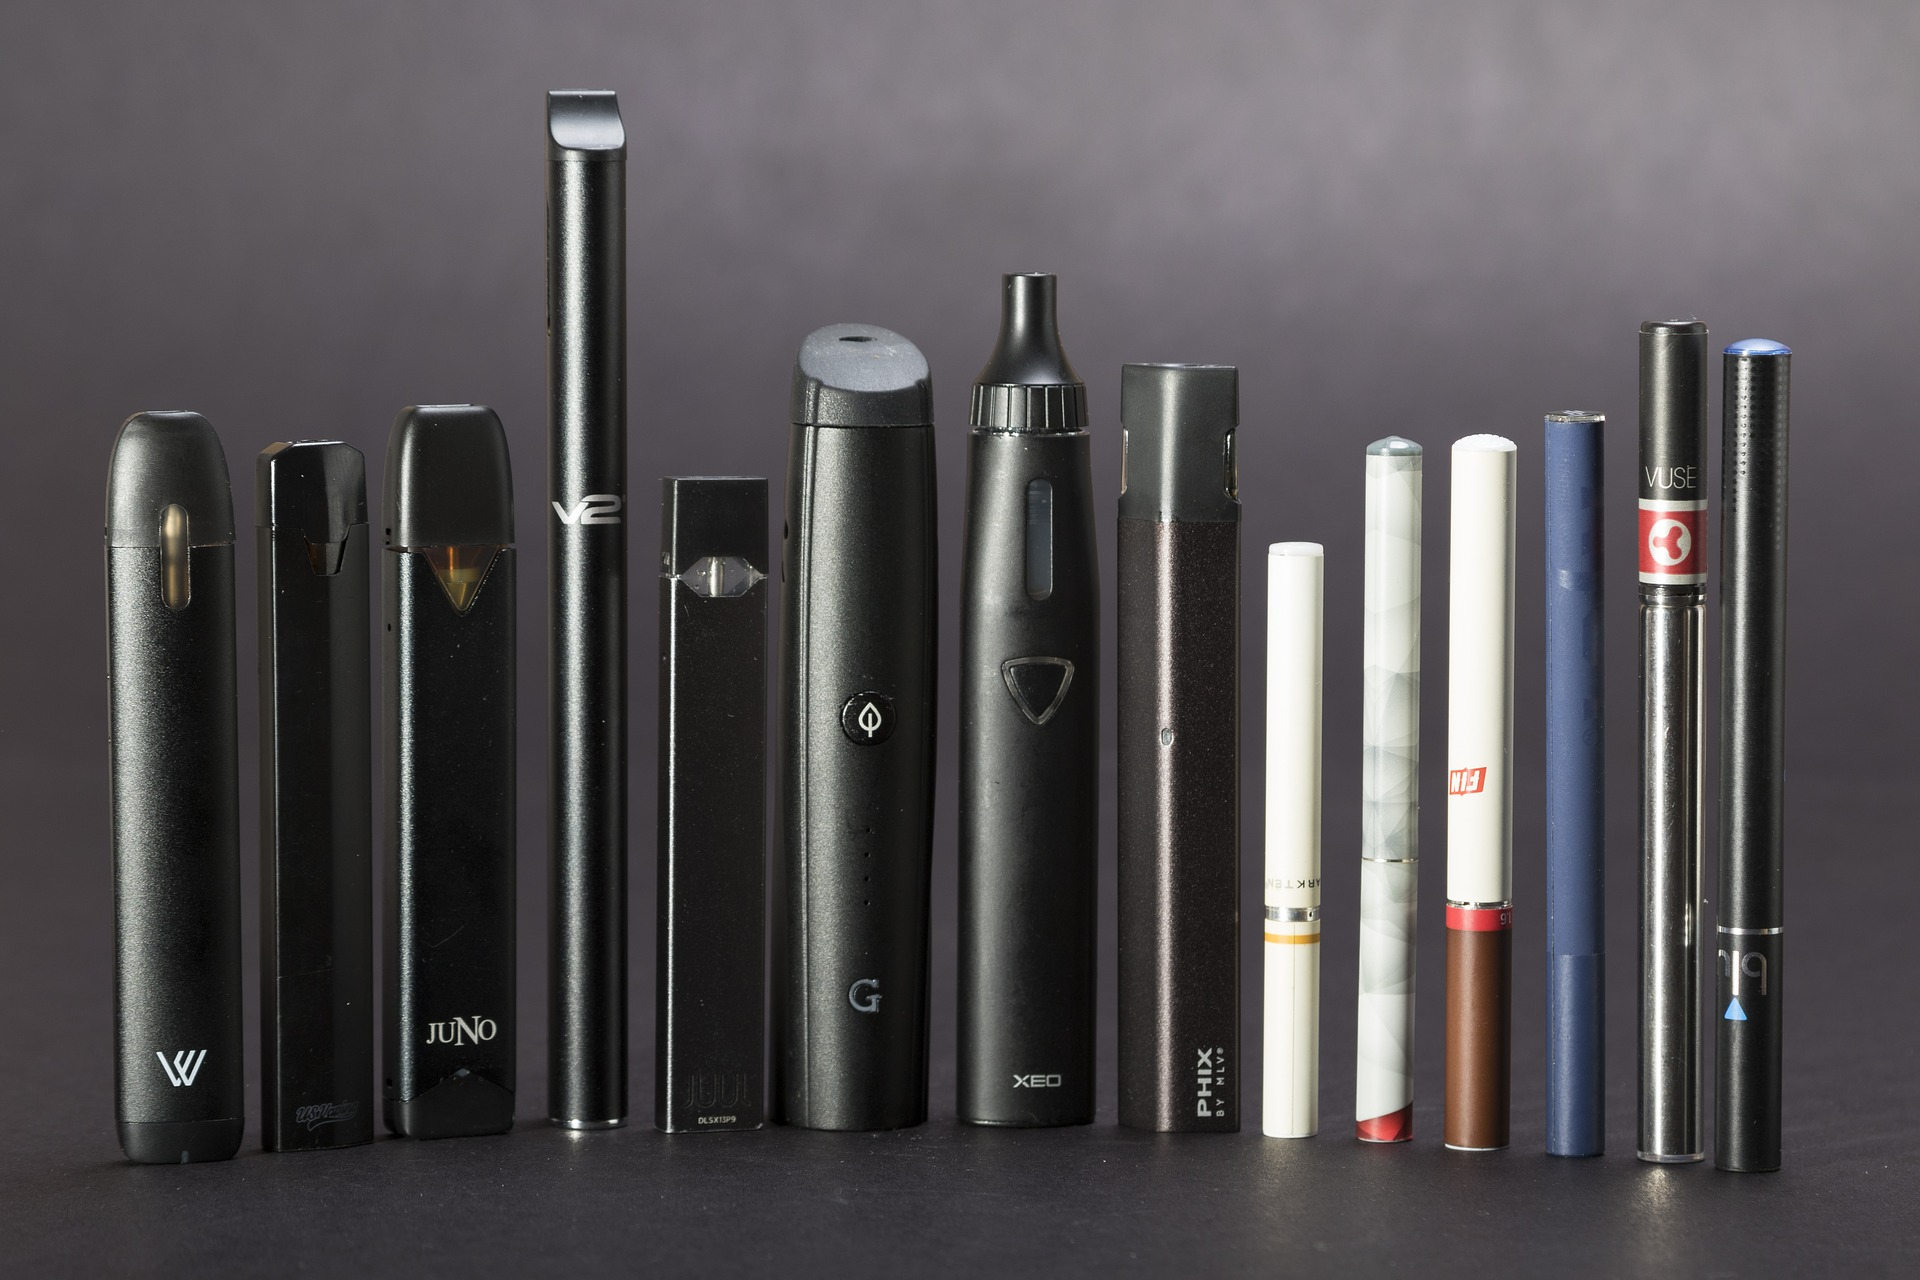 Just 1 month of vaping alters the lungs of new e-cigarette